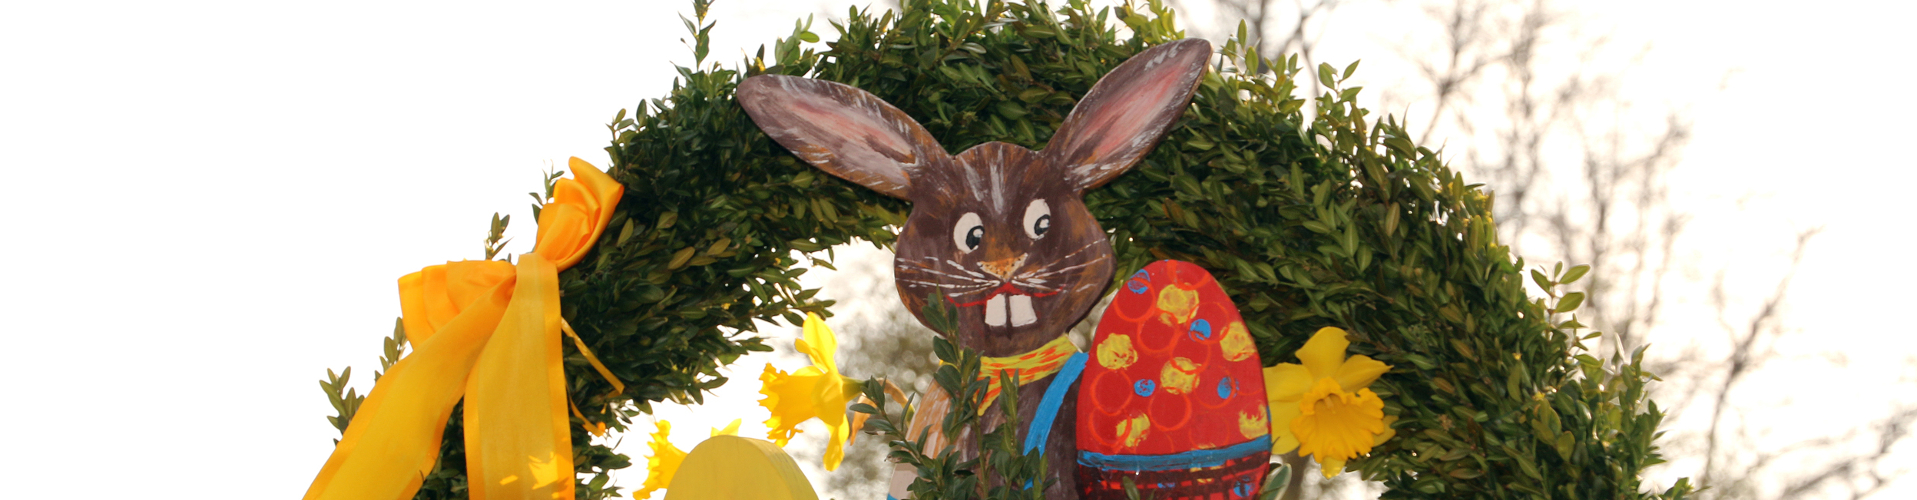 Header Langfurth - Osterhase